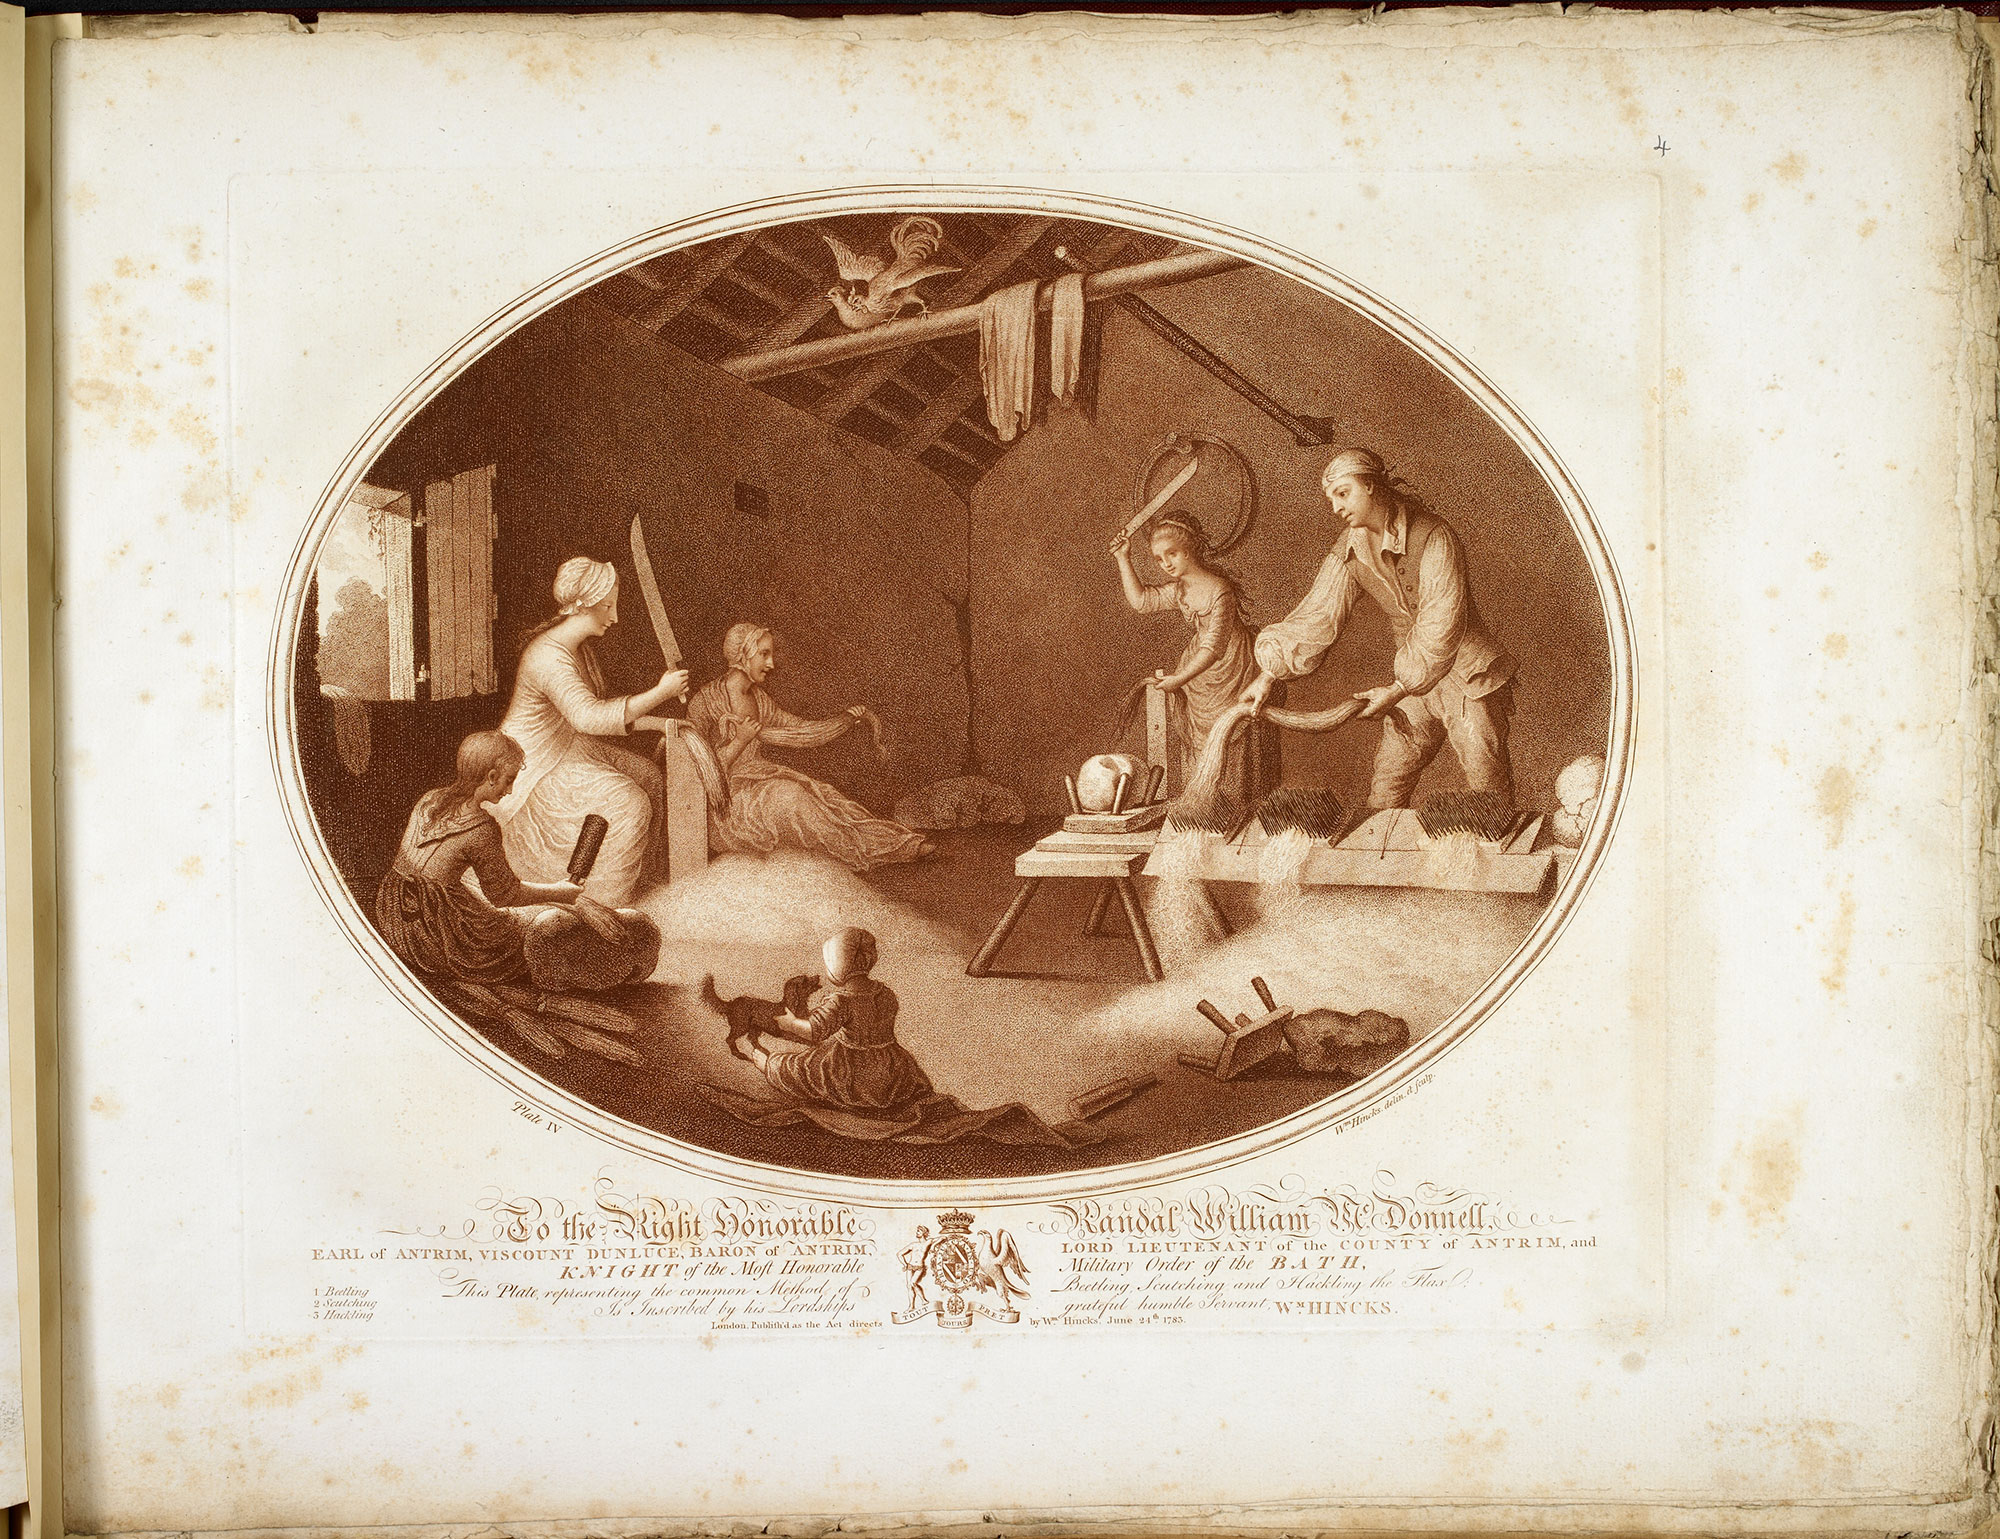 Two illustrations of 18th century textile production